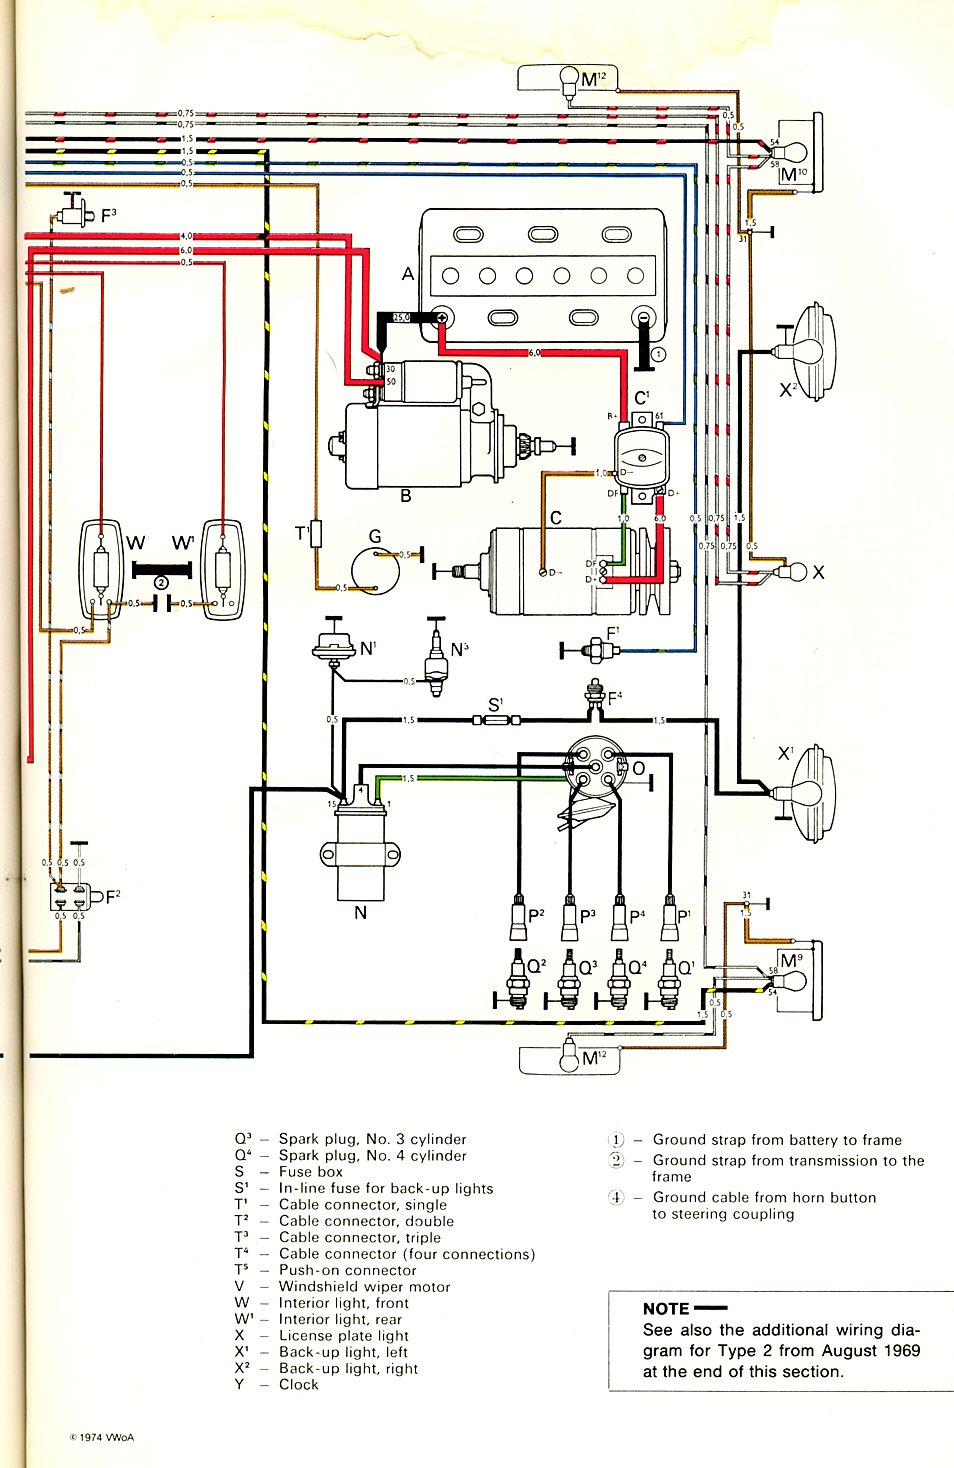 baybus_70b thesamba com type 2 wiring diagrams vw wiring diagrams at gsmportal.co